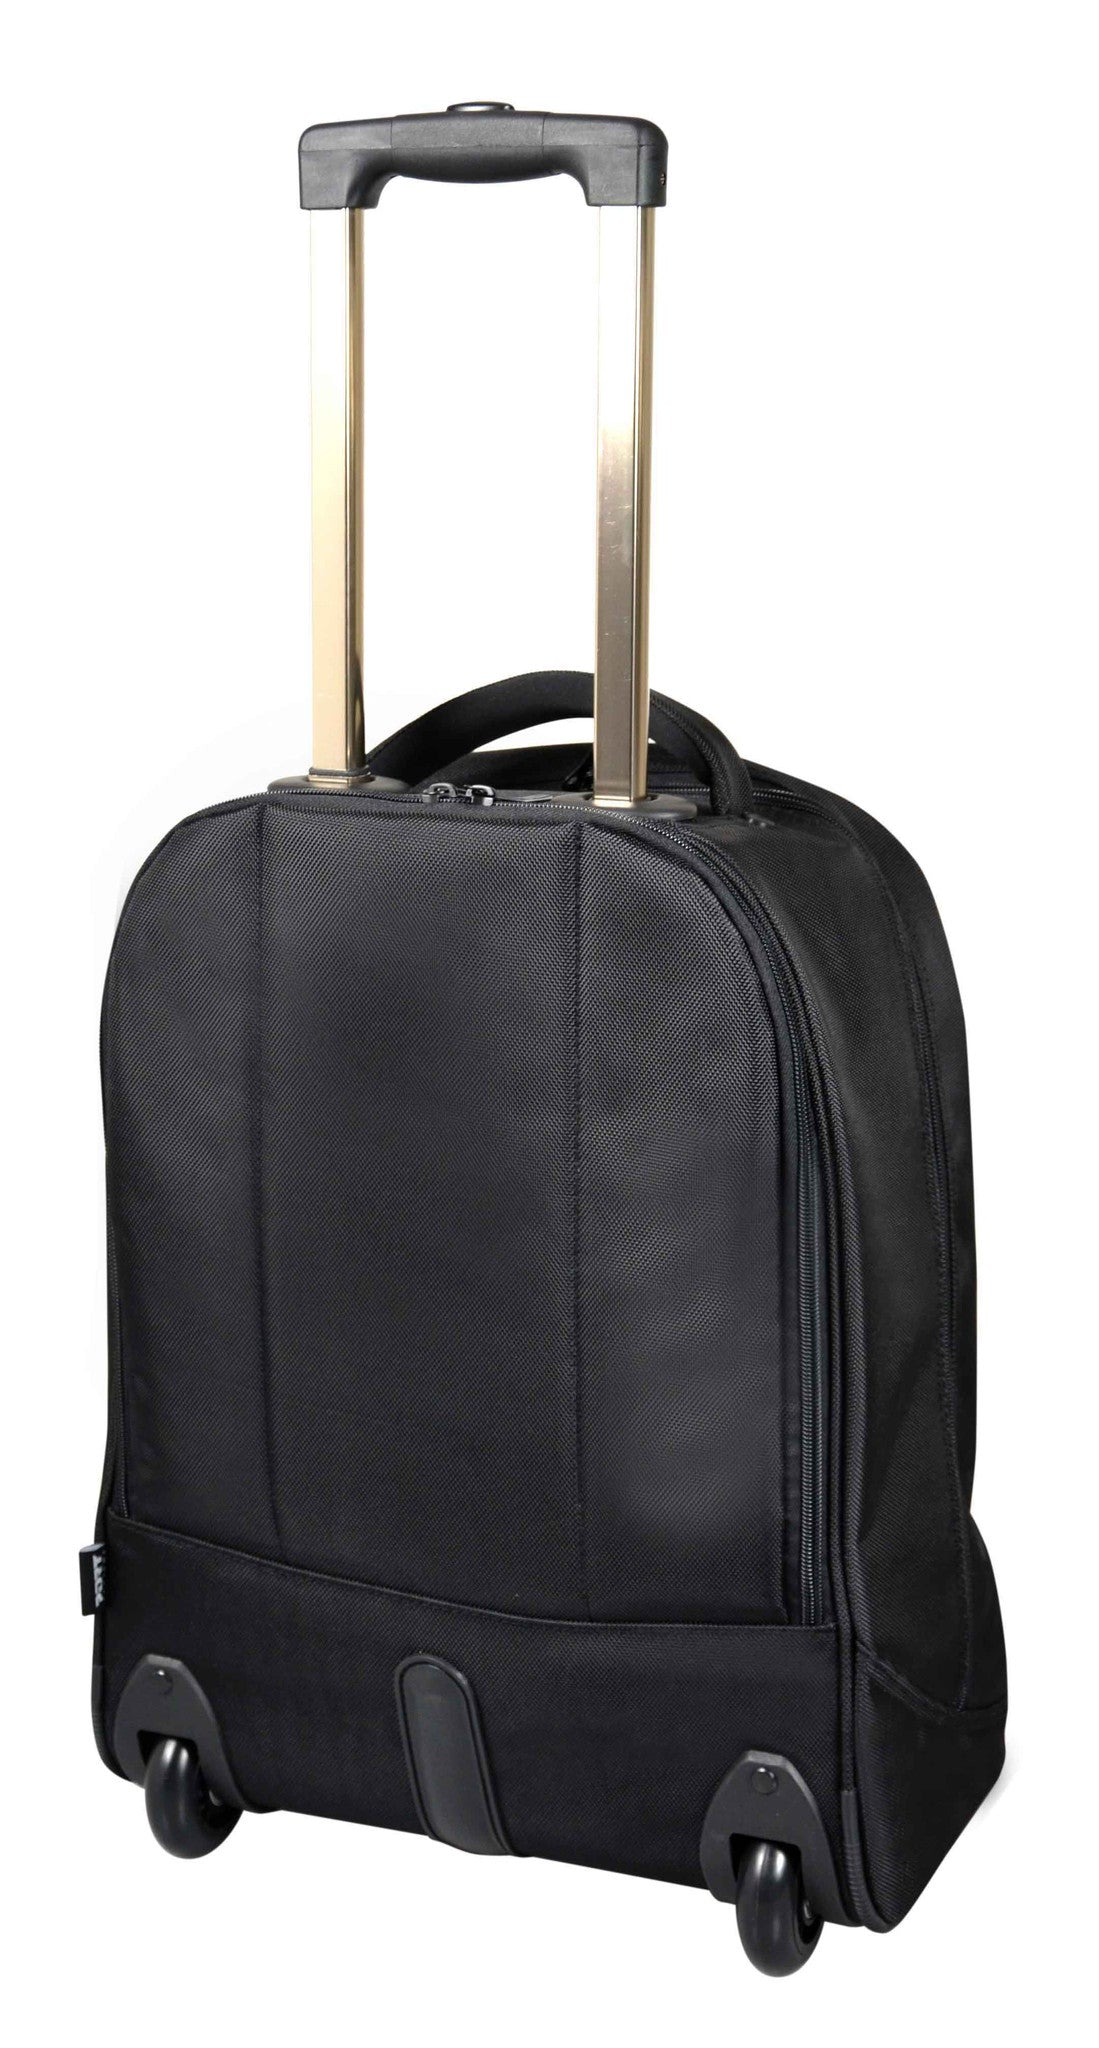 "PORT Designs - Manhattan BackPack/Roller Bag 15.6"" - Black, Accessories, Port, BaRRiL - BaRRiL"